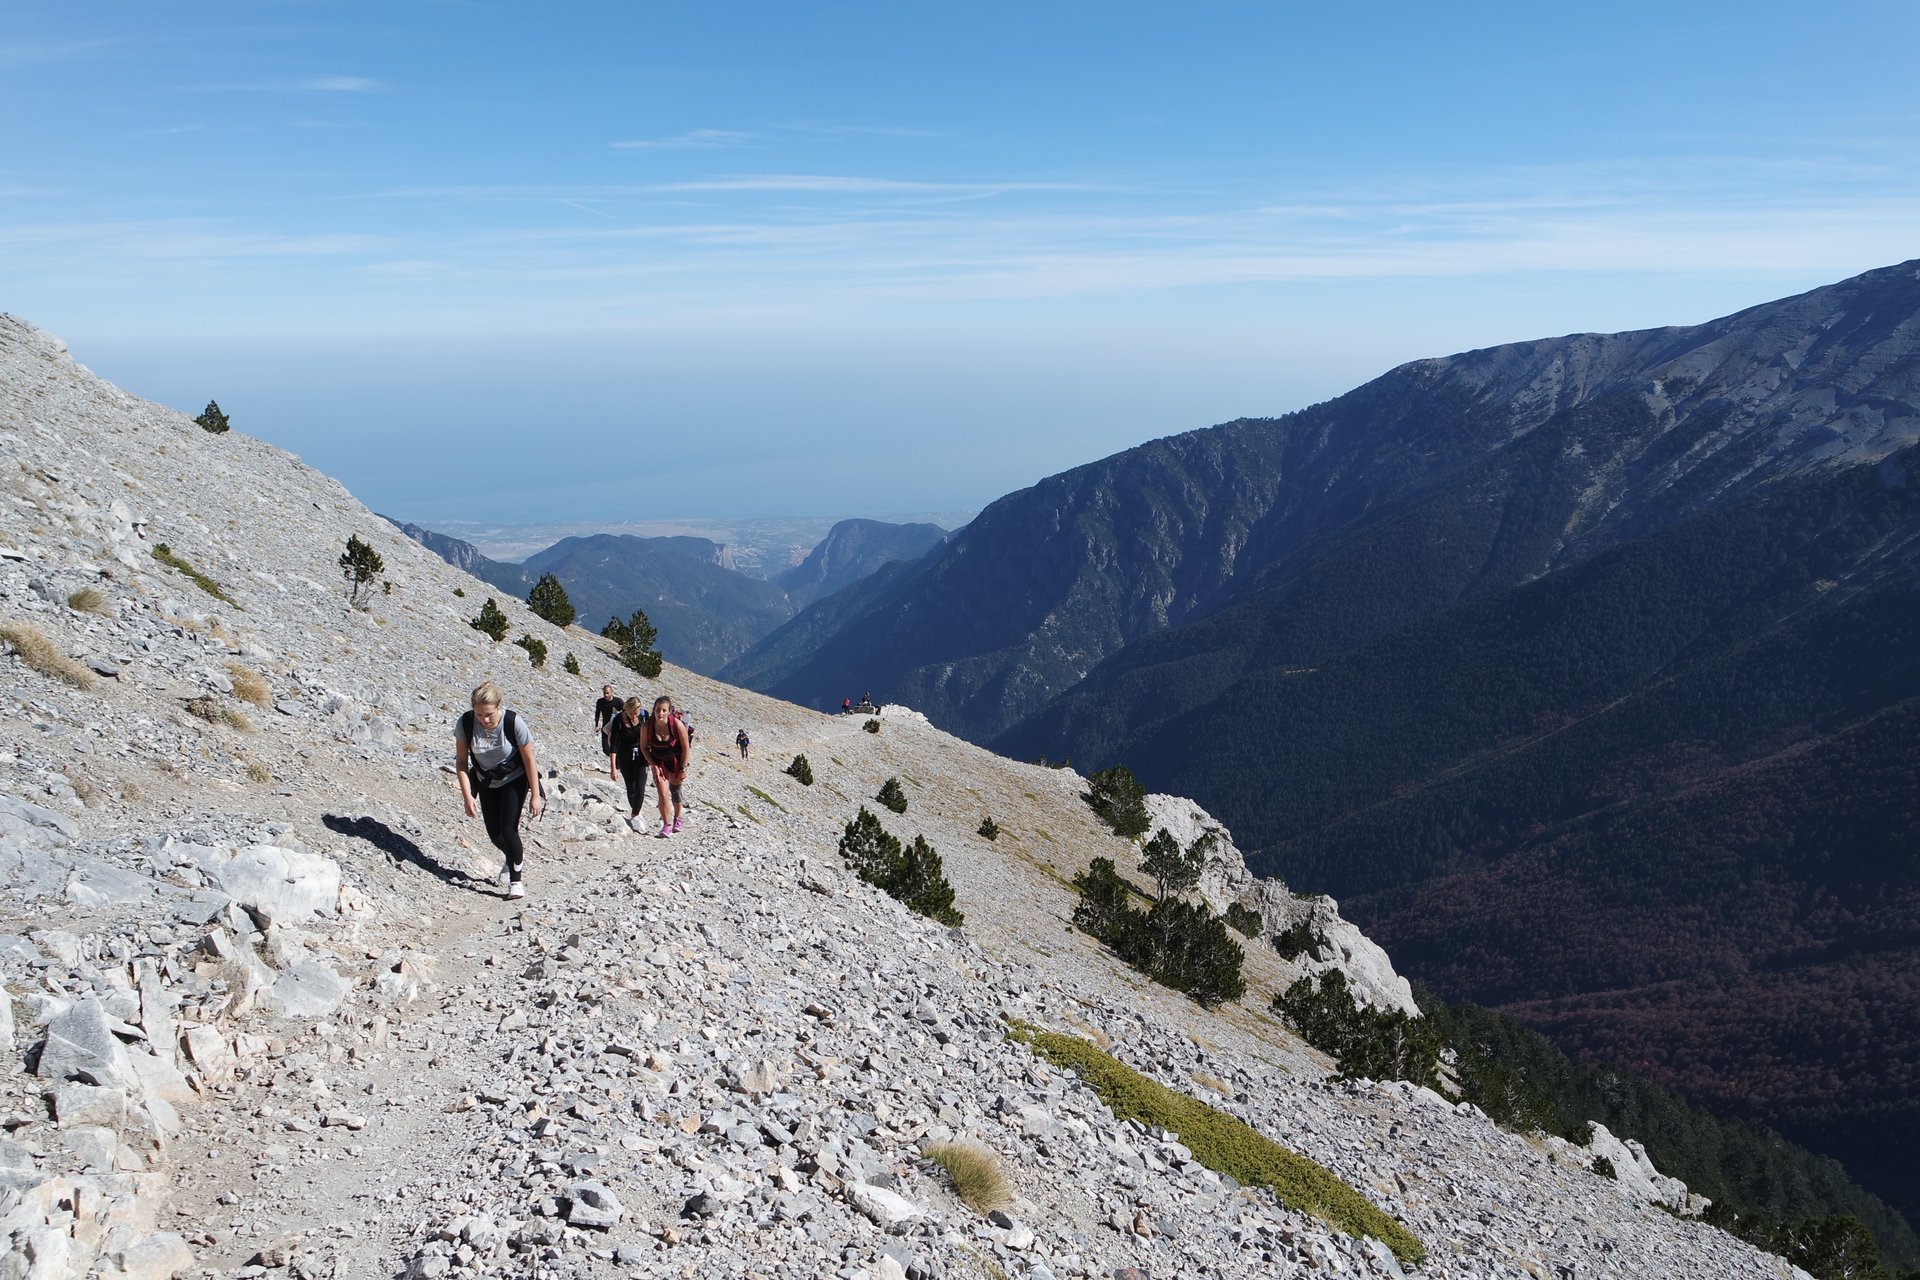 Climbing Mount Olympus in Greece 2020 - Best Time